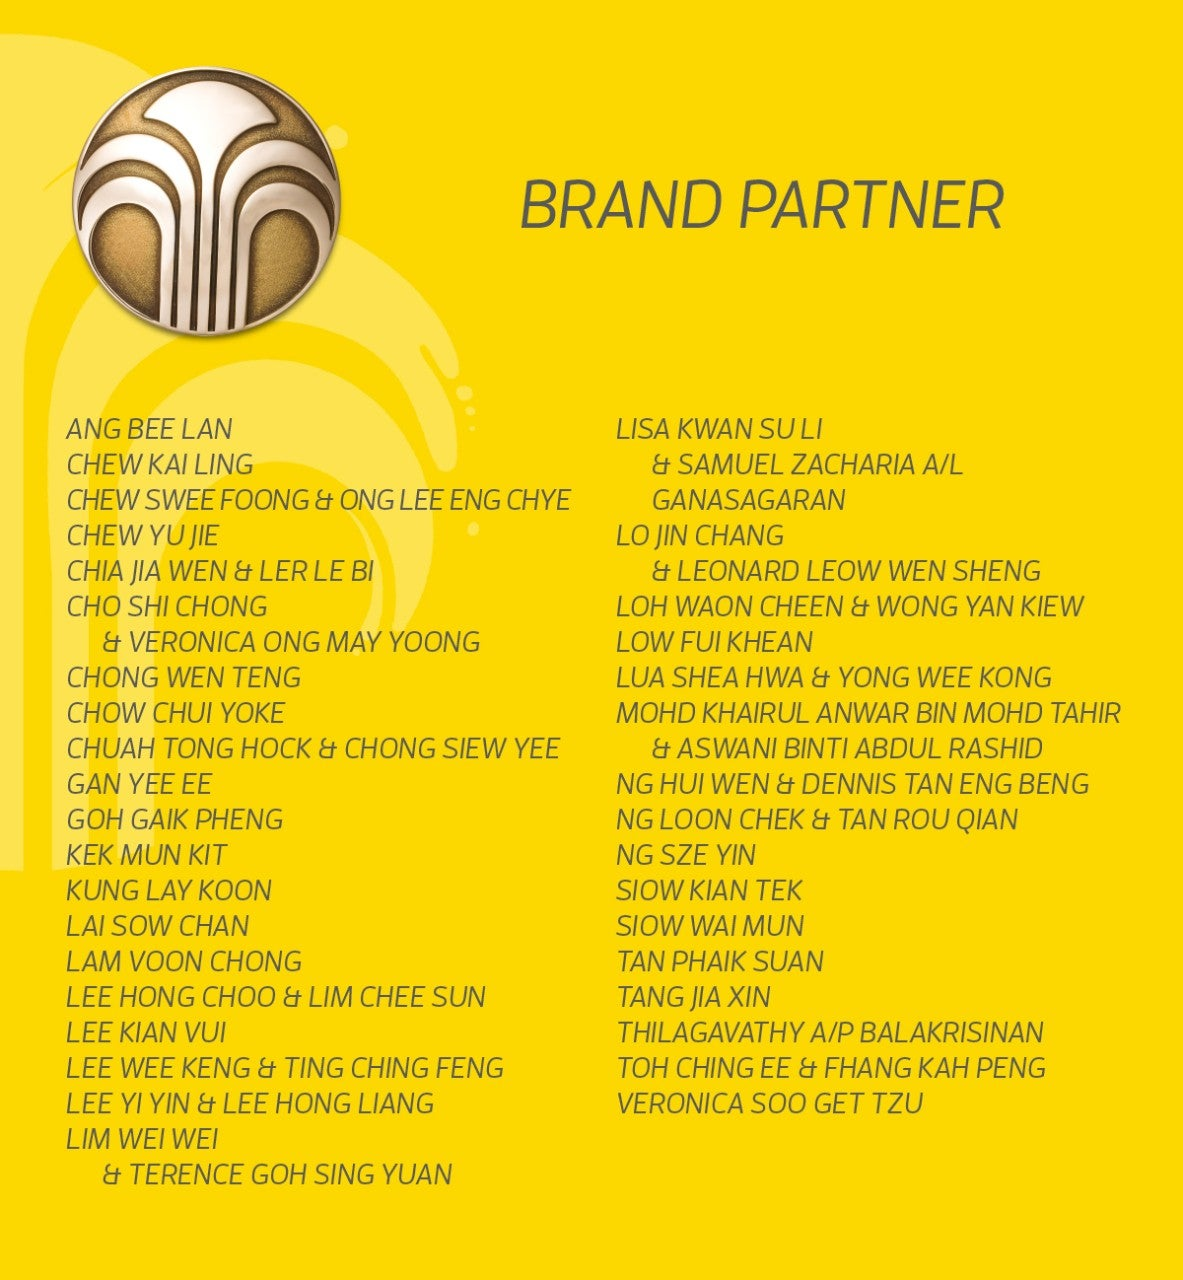 MY-Pin-advacenment_BrandPartner_Jan2020